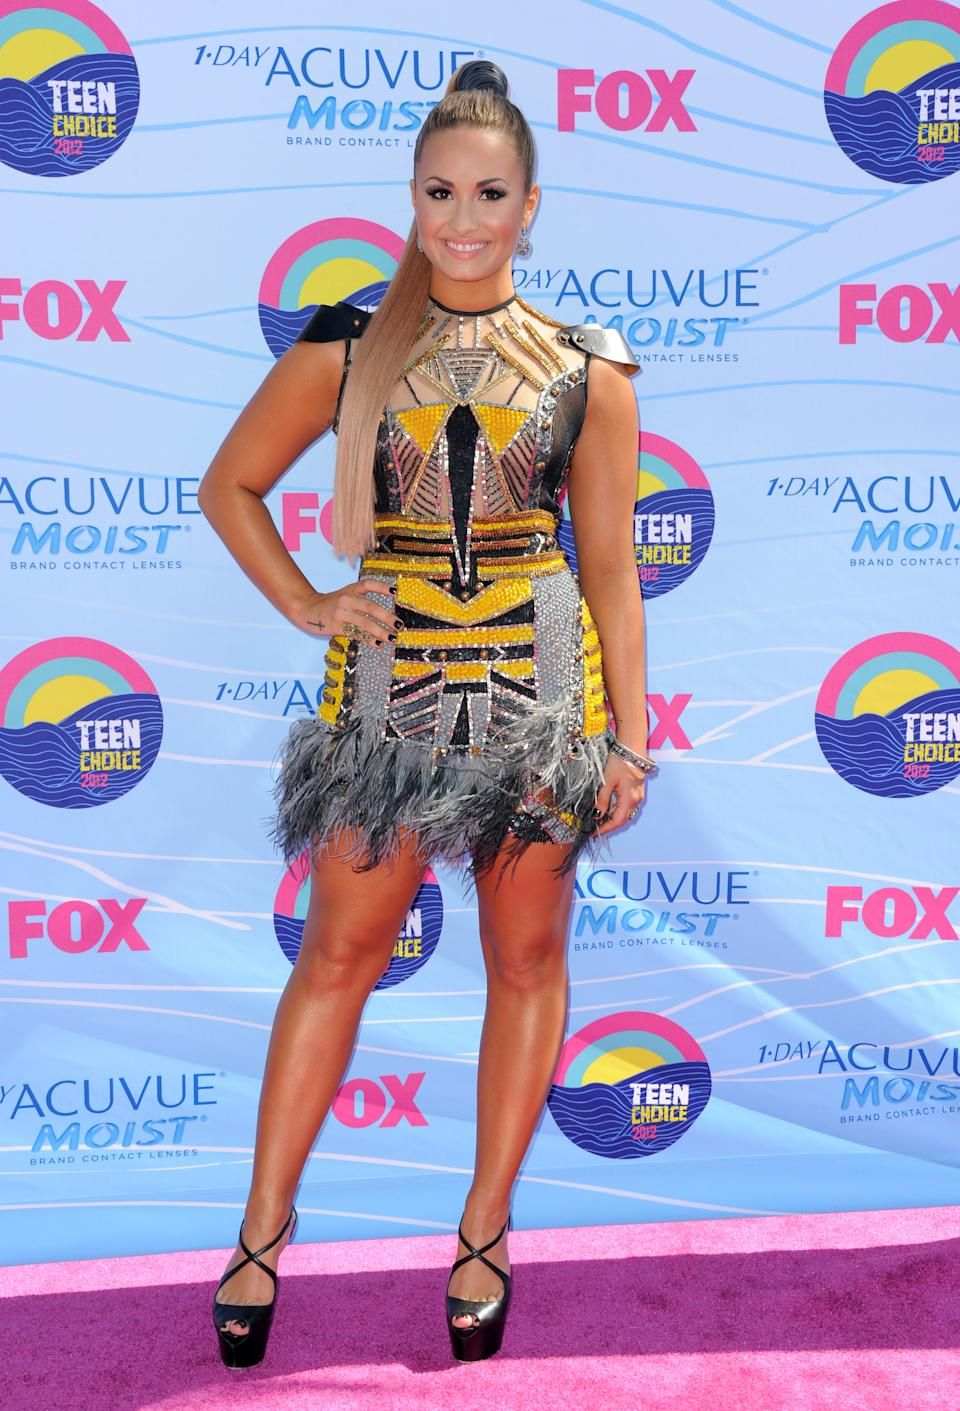 Demi Lovato arrives at the Teen Choice Awards on Sunday, July 22, 2012, in Universal City, Calif. (Photo by Jordan Strauss/Invision/AP)